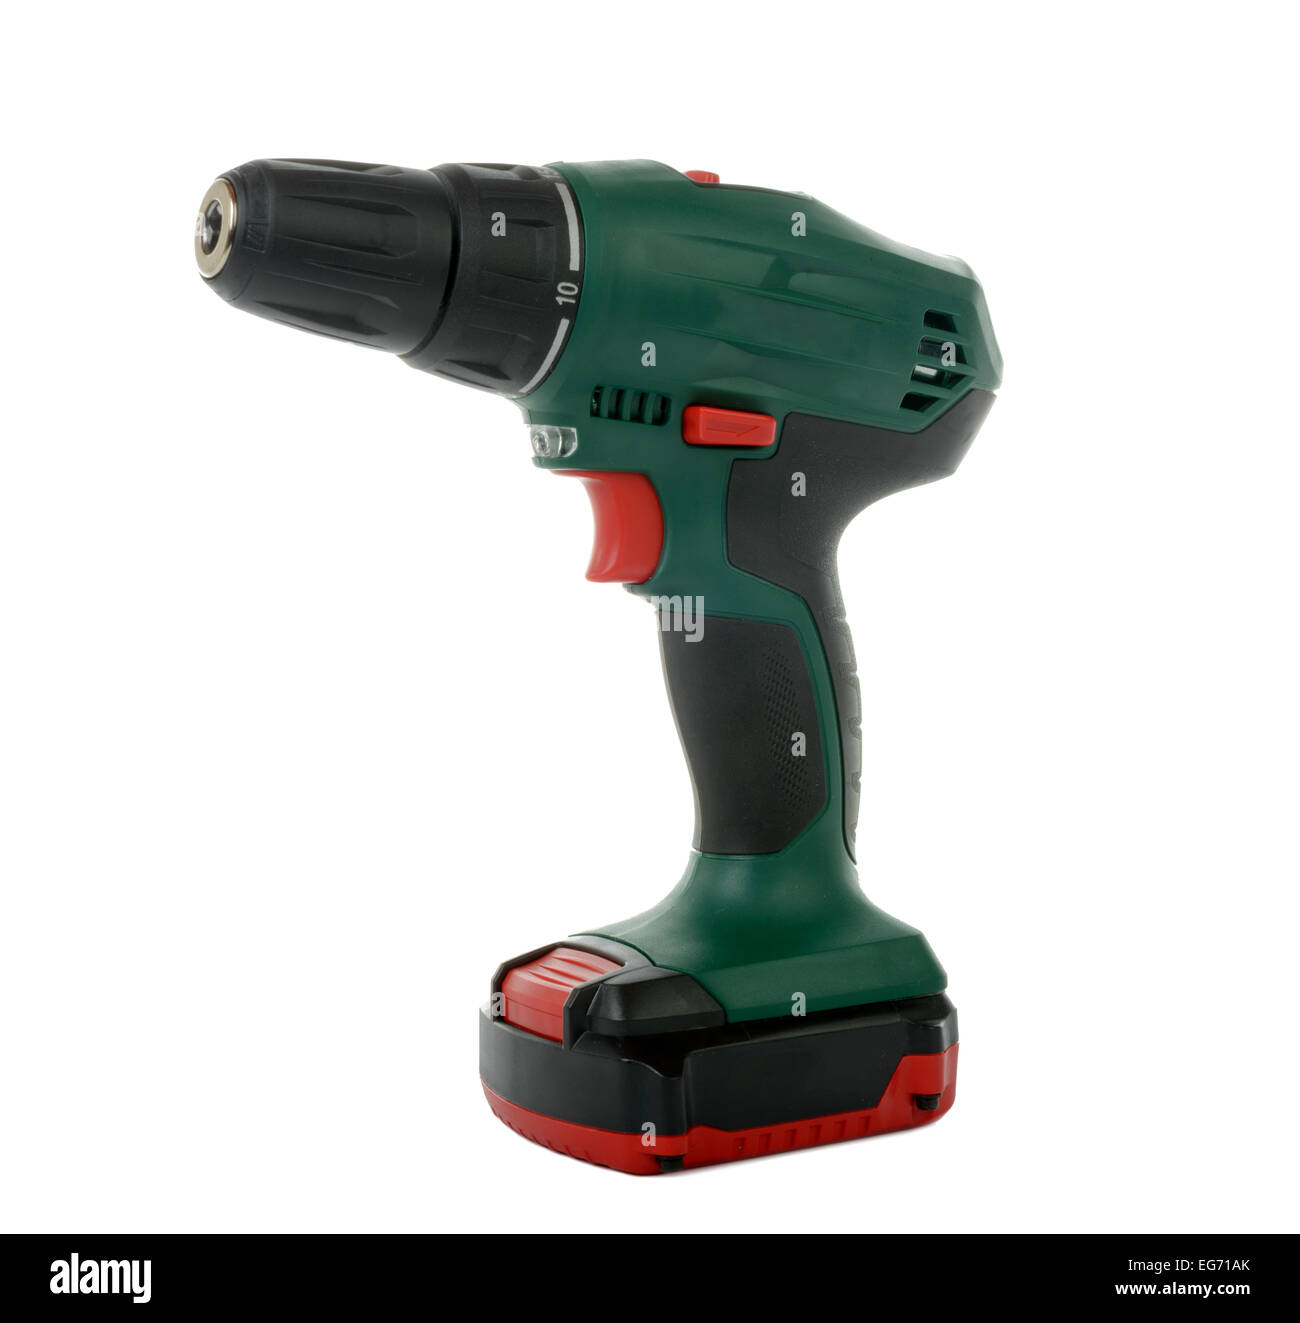 green cordless drill on the white background - Stock Image